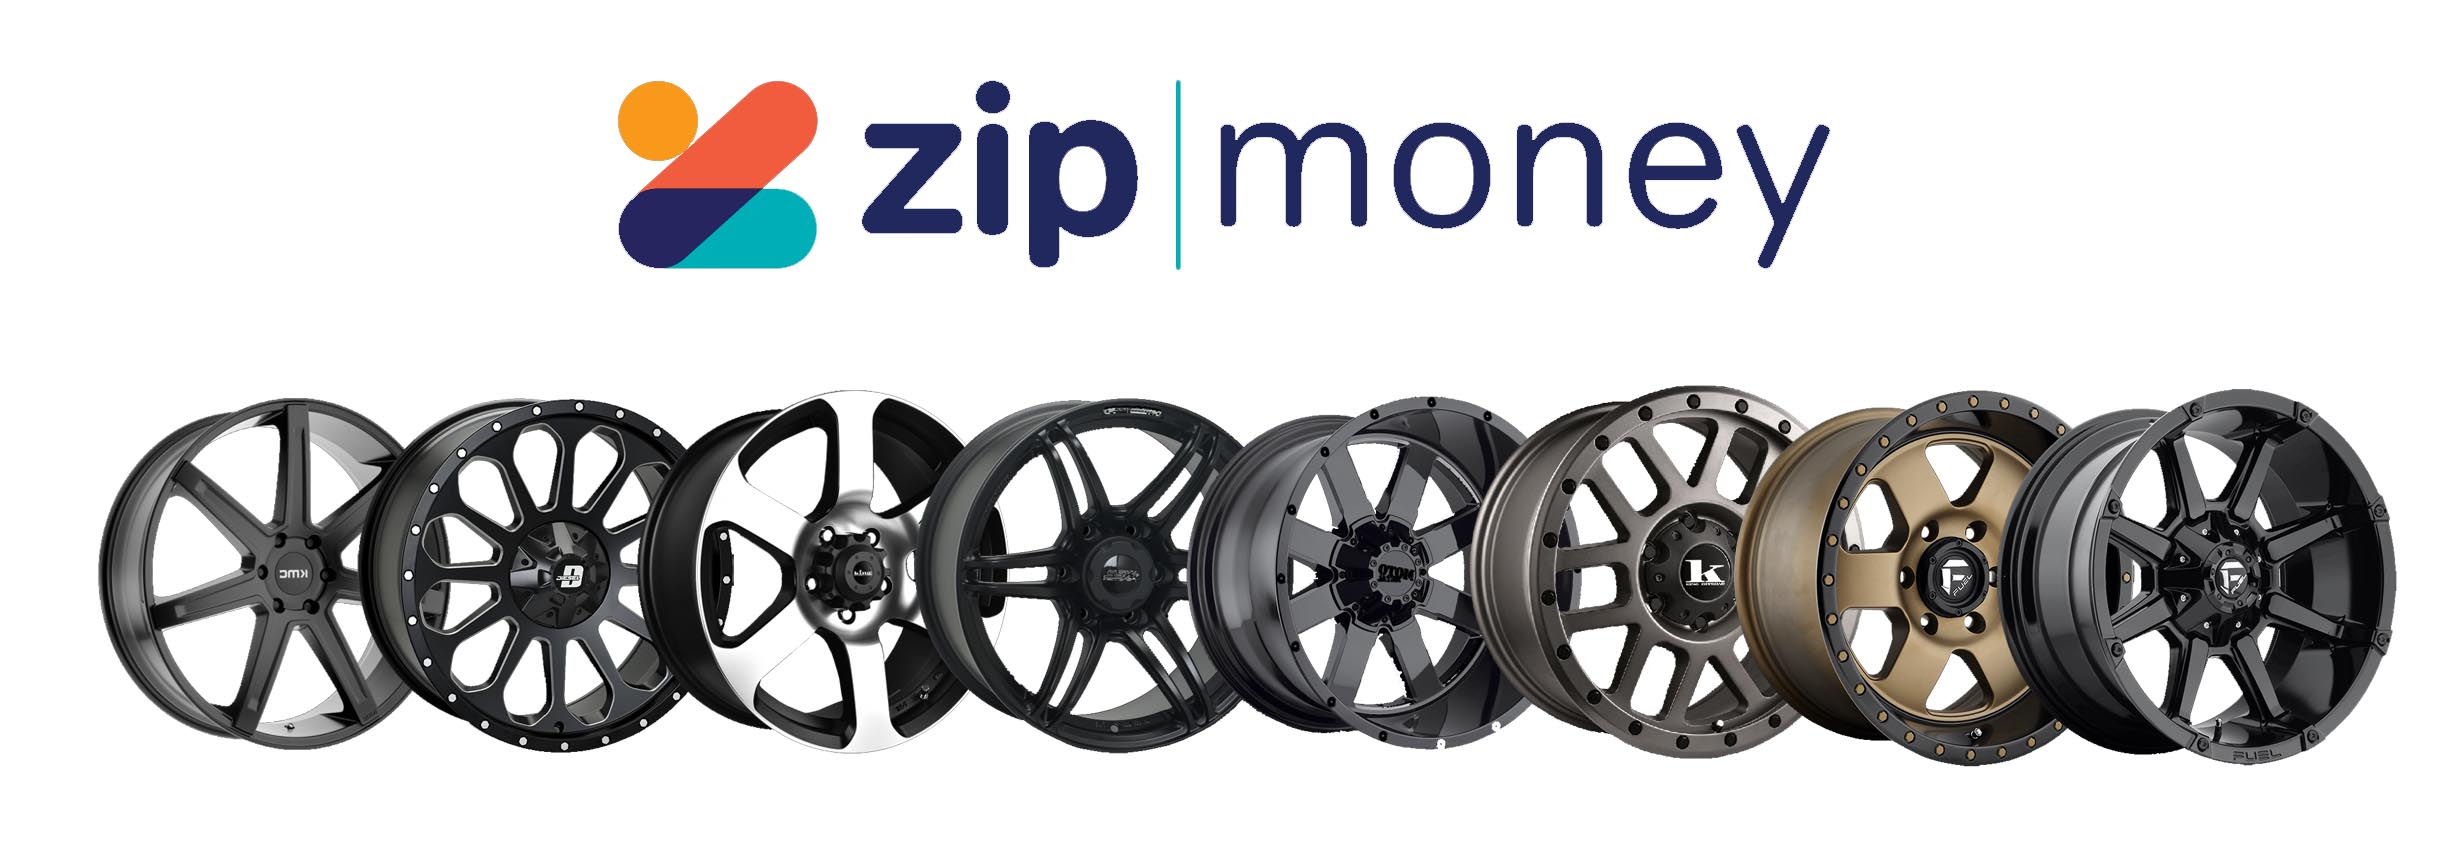 Updated ZipMoney Banner with the new logo. The wheels are specific to the vehicle in topic - Ford Ranger.